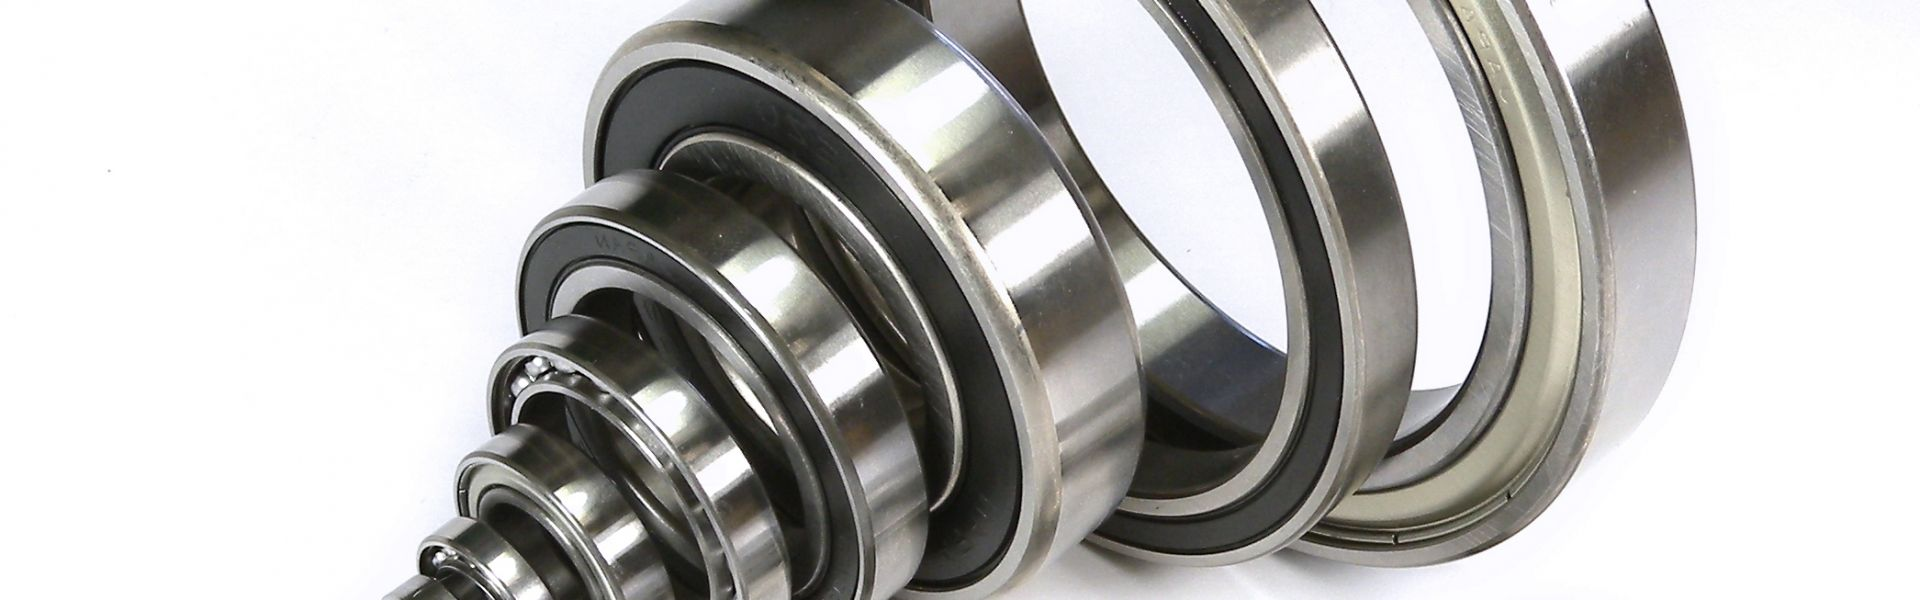 EZO precision bearings